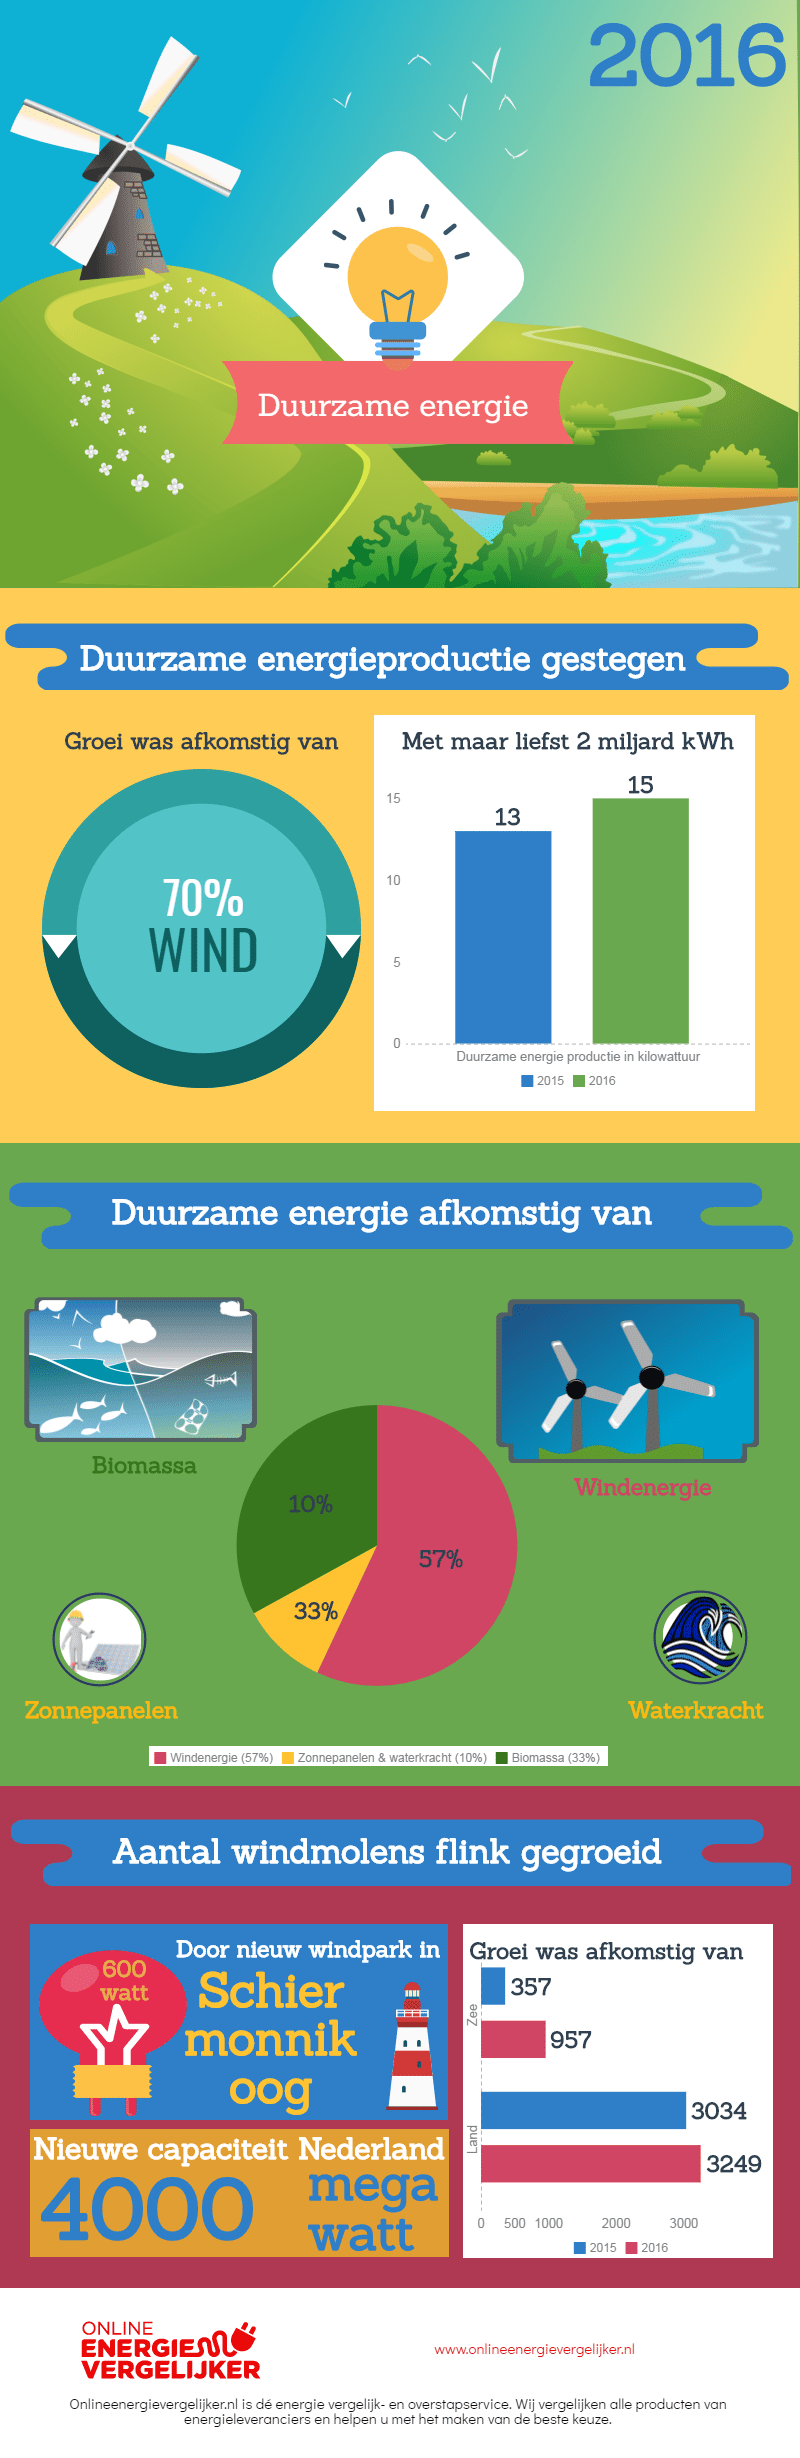 duurzame-energie-infographic